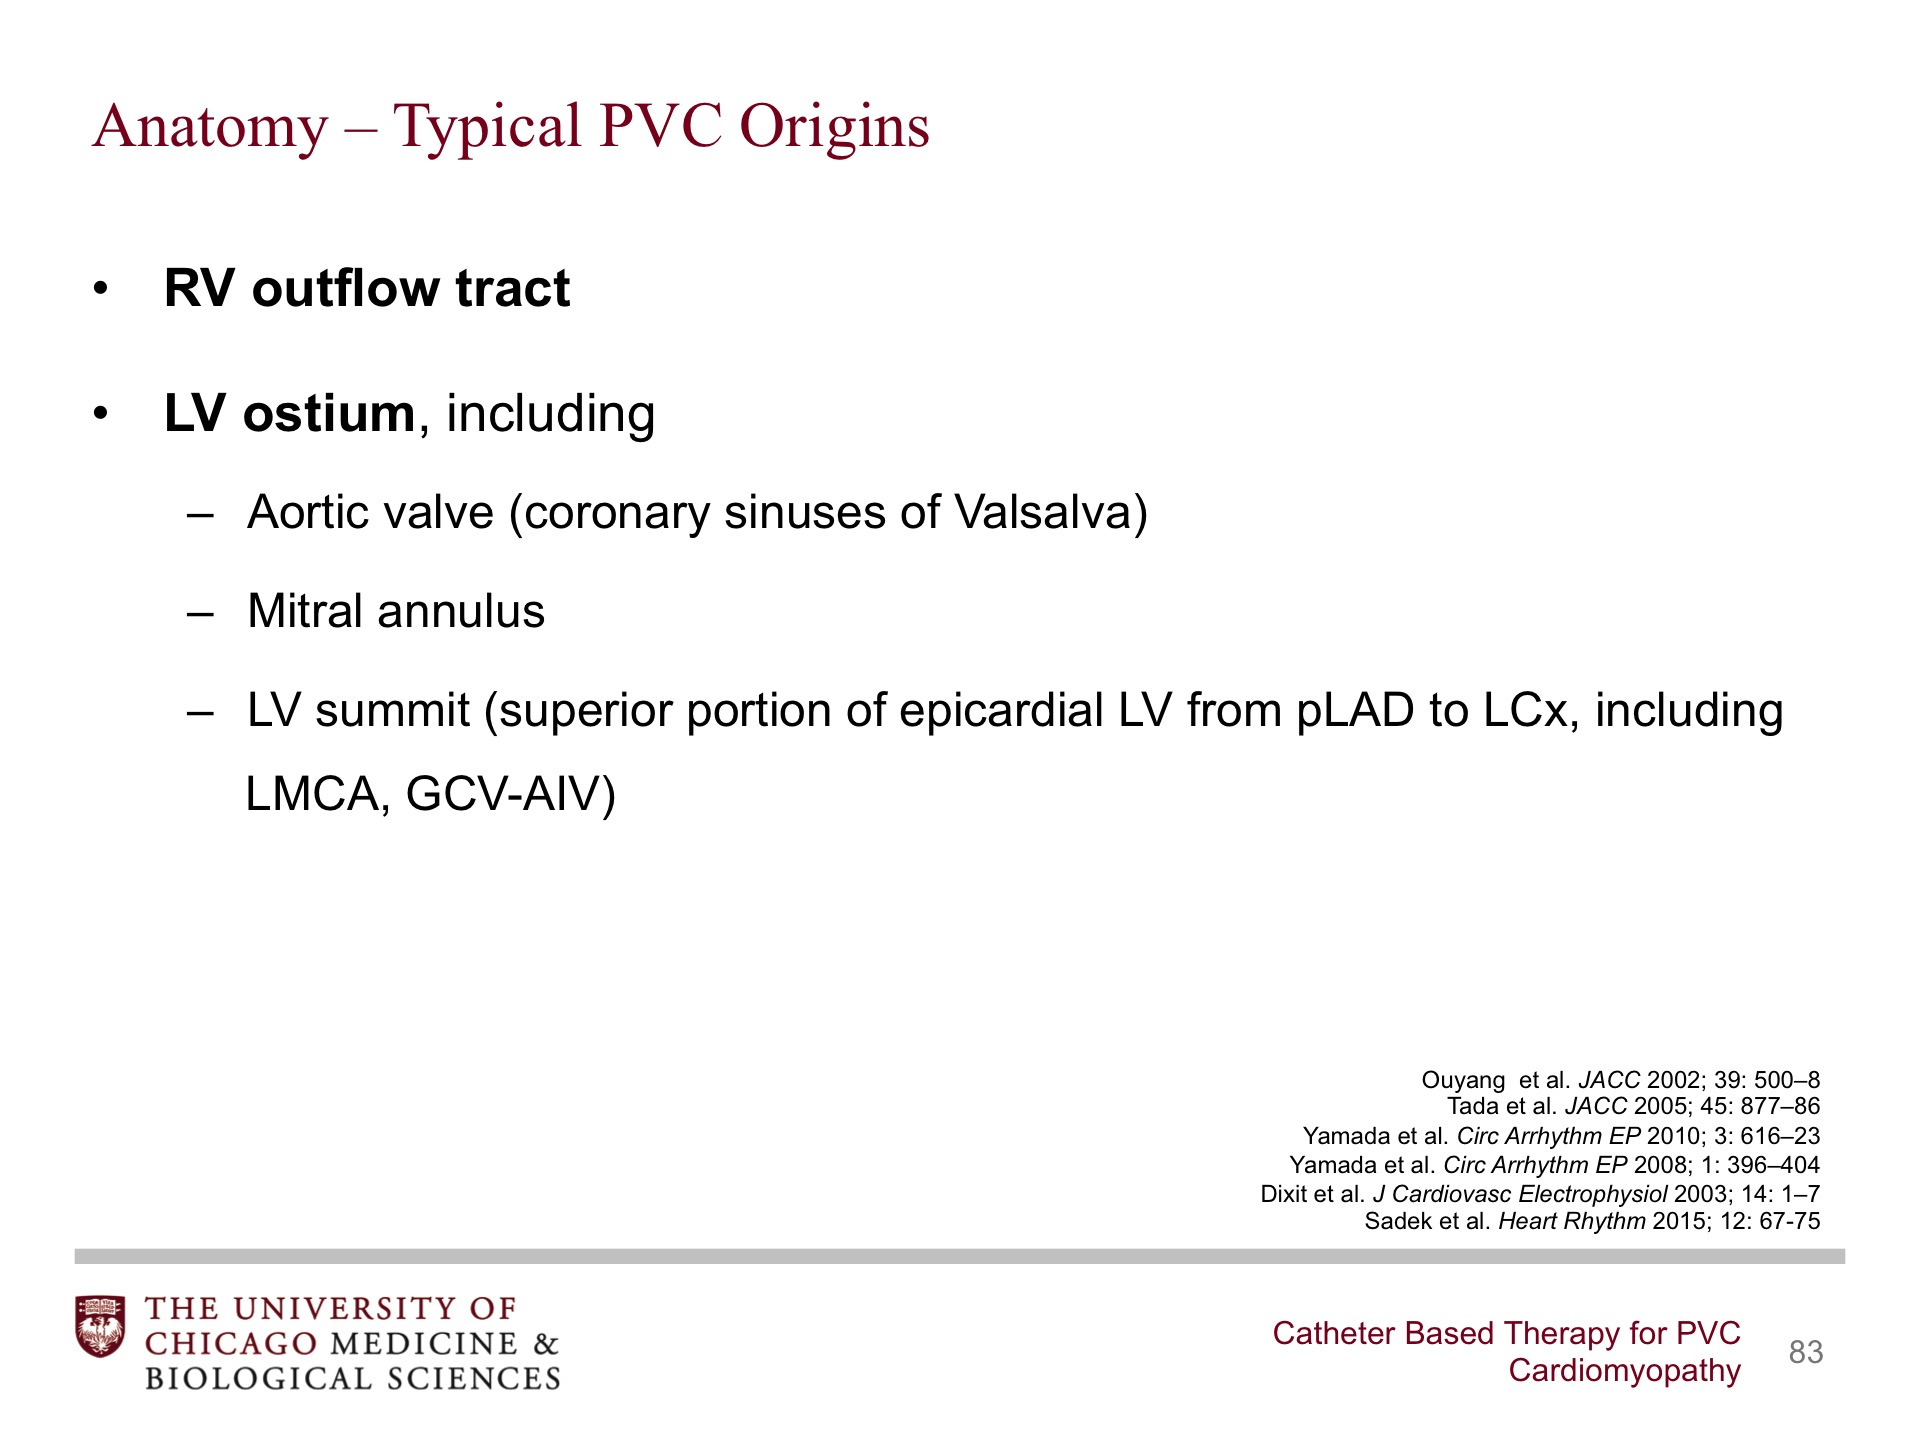 Catheter-Based Therapy for PVC Cardiomyopathy - BroadcastMed